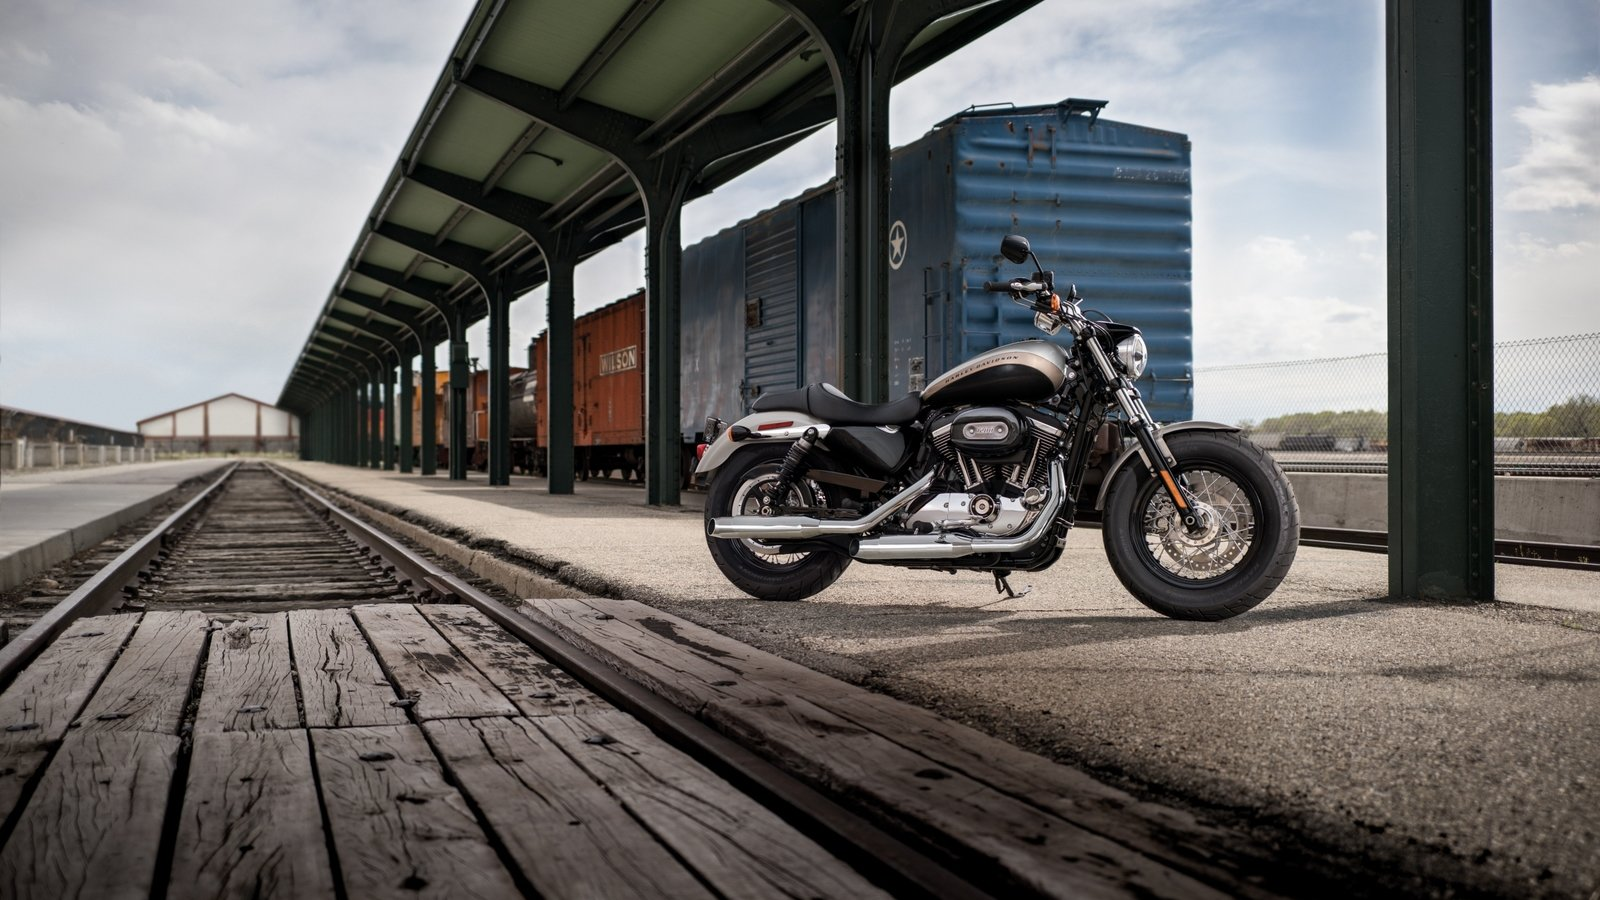 2015 2019 Harley Davidson Sportster 1200 Custom Pictures Photos Wallpapers And Video Top Speed